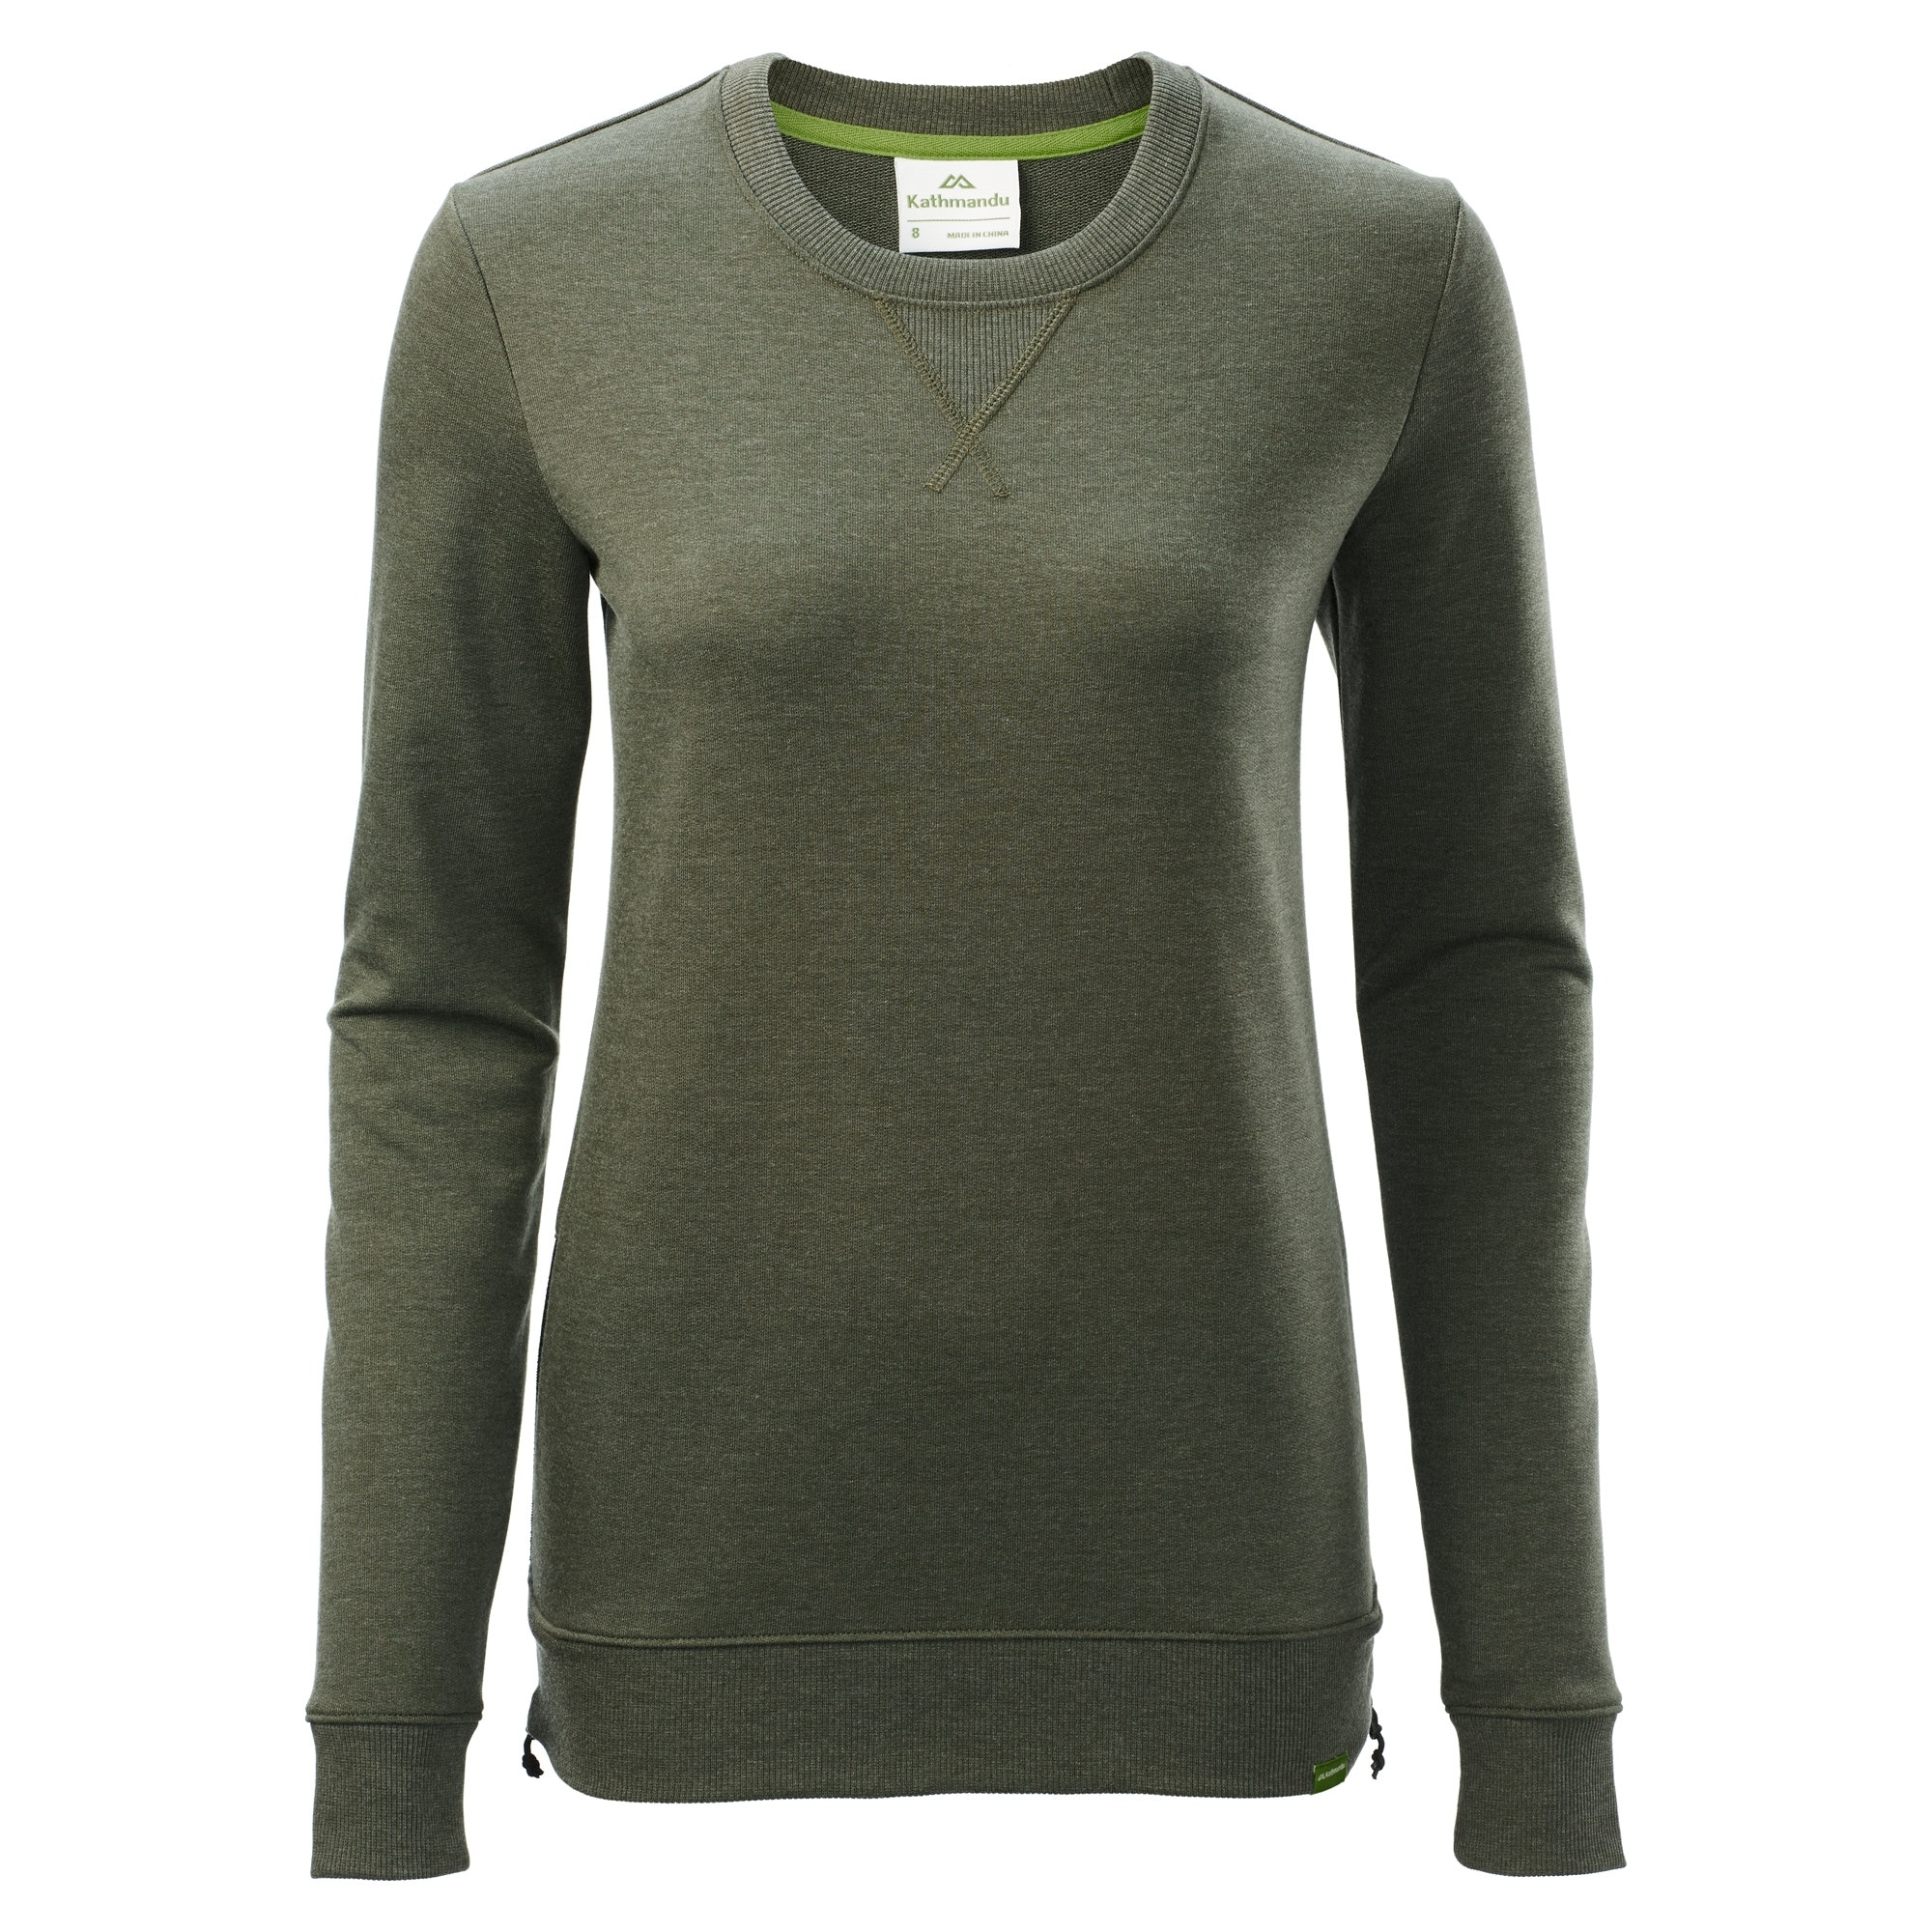 ea3654d10db Kathmandu Federate Women s Travel Crew Top Dark Olive Marle A0118 ...